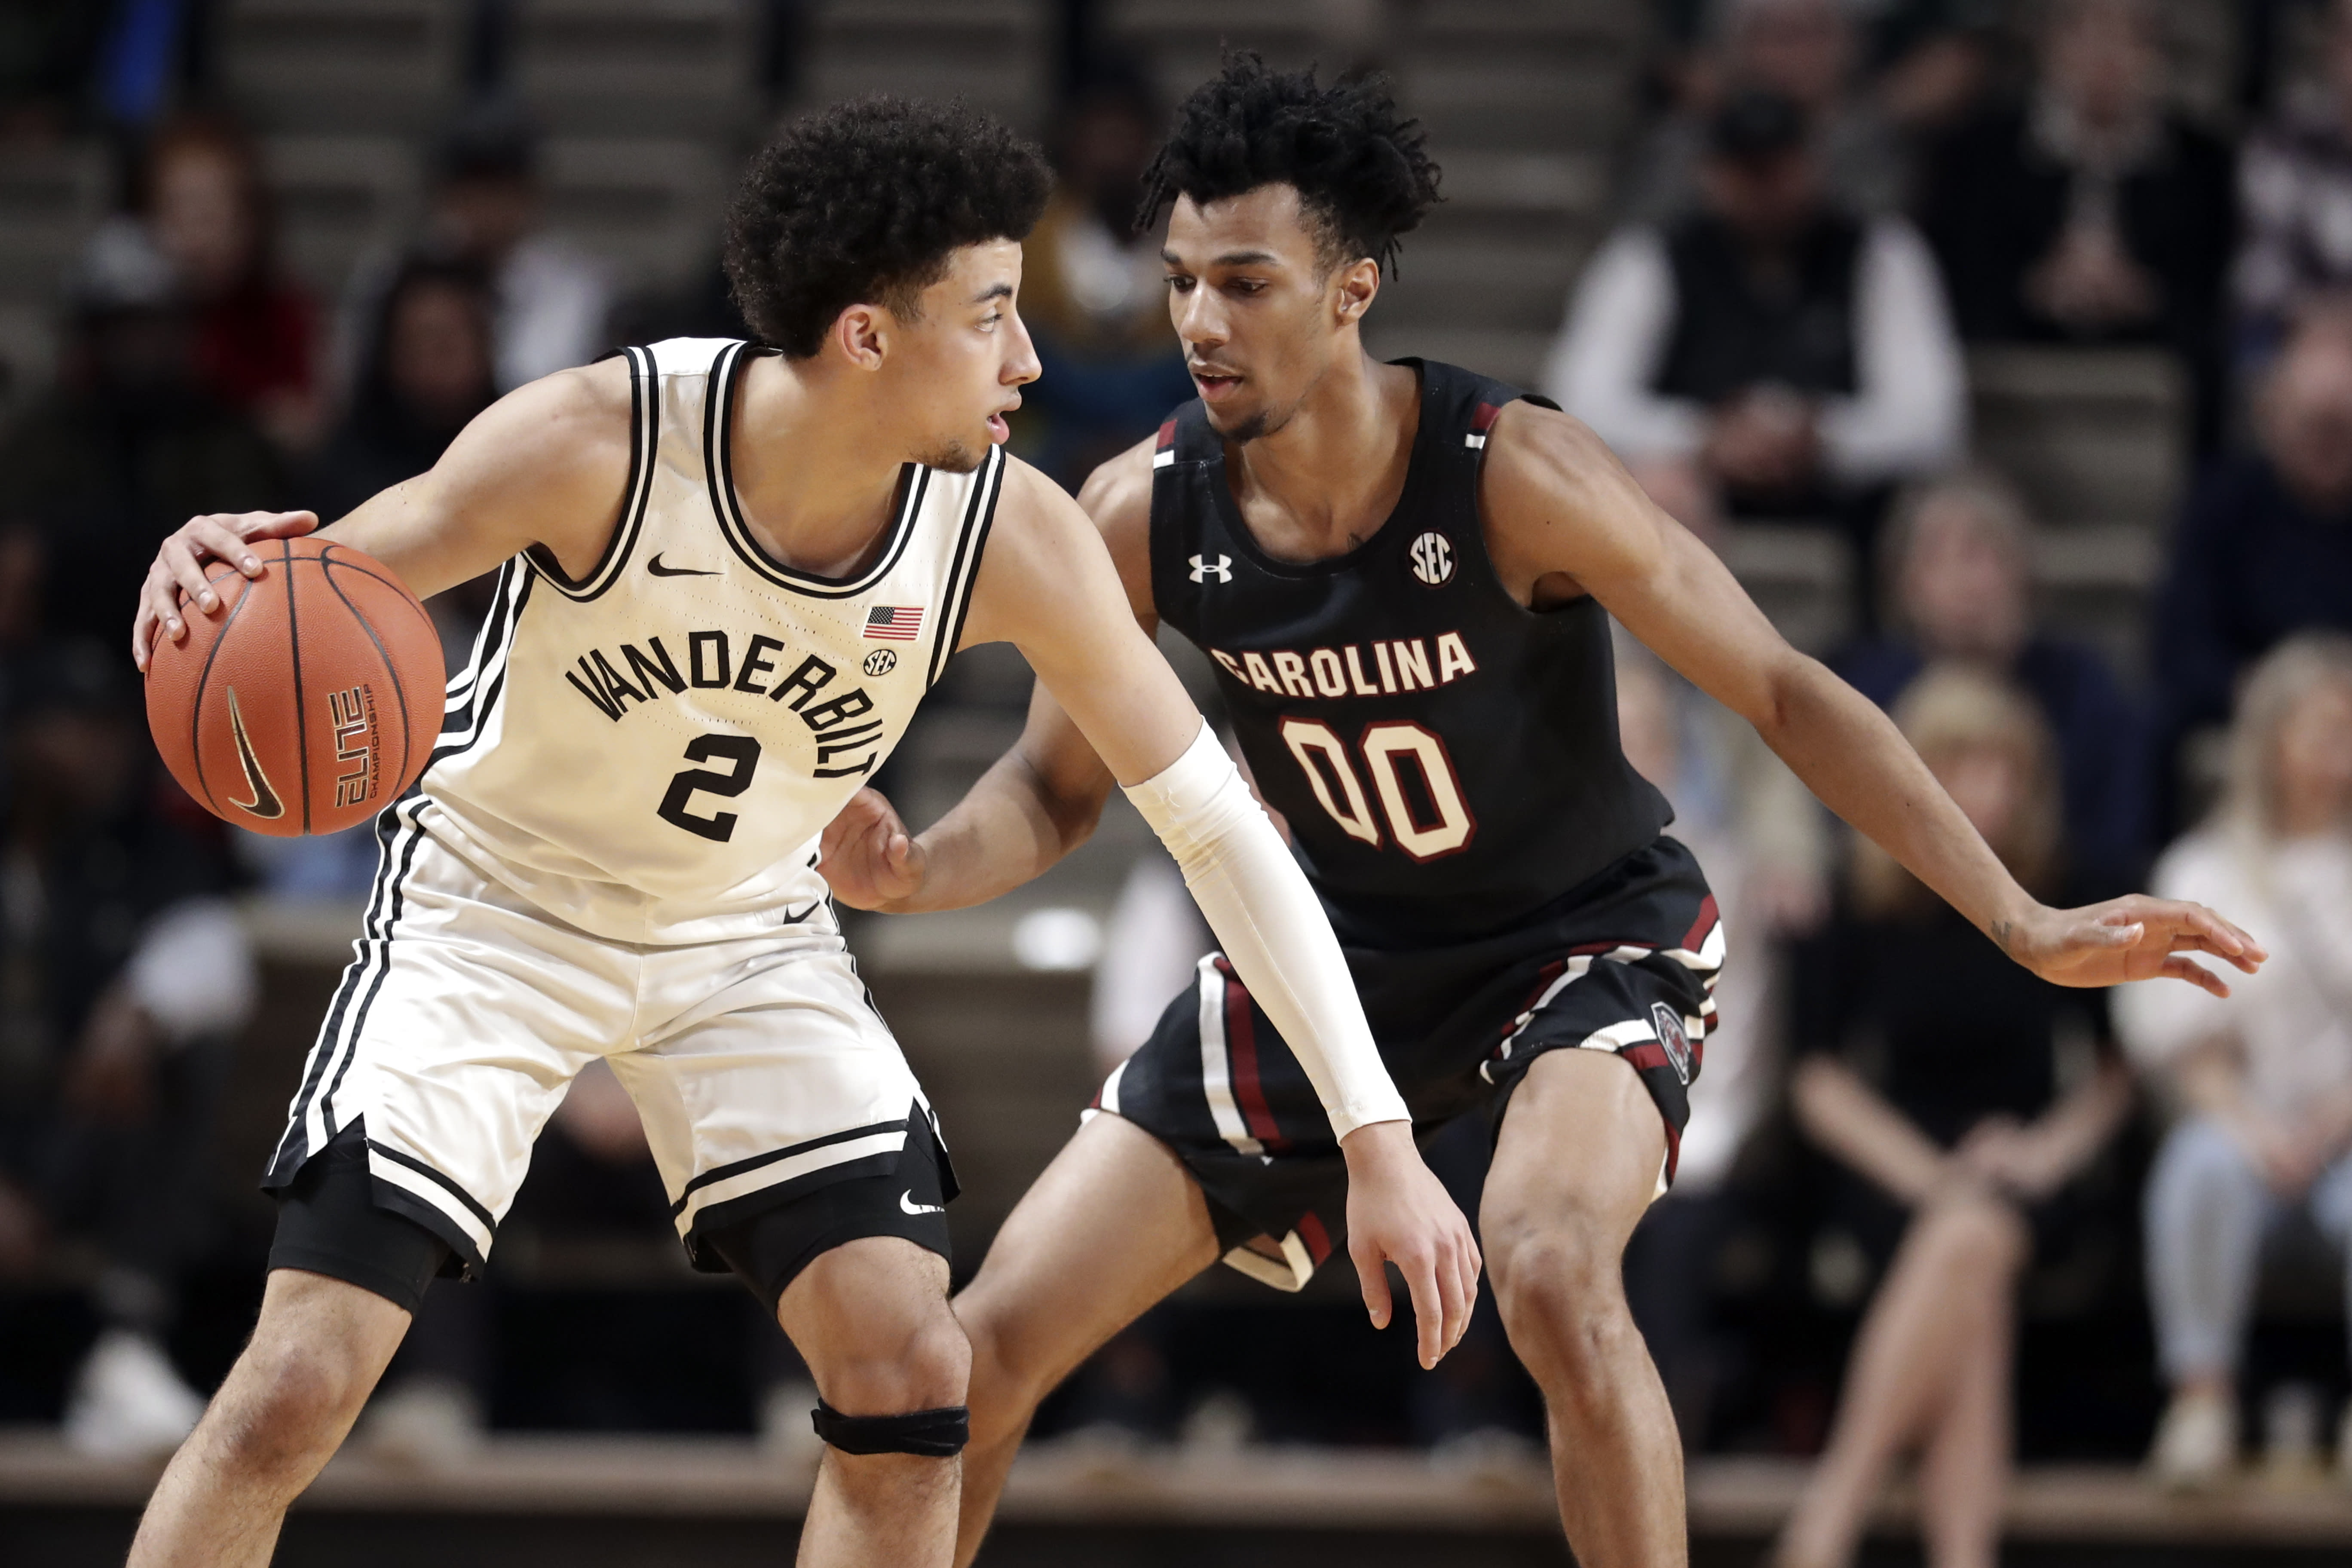 Vanderbilt guard Scotty Pippen Jr. (2) plays against South Carolina's A.J. Lawson (00) in the second half of an NCAA college basketball game Saturday, March 7, 2020, in Nashville, Tenn. Pippen led Vanderbilt with 21 points as they won 83-74. (AP Photo/Mark Humphrey)